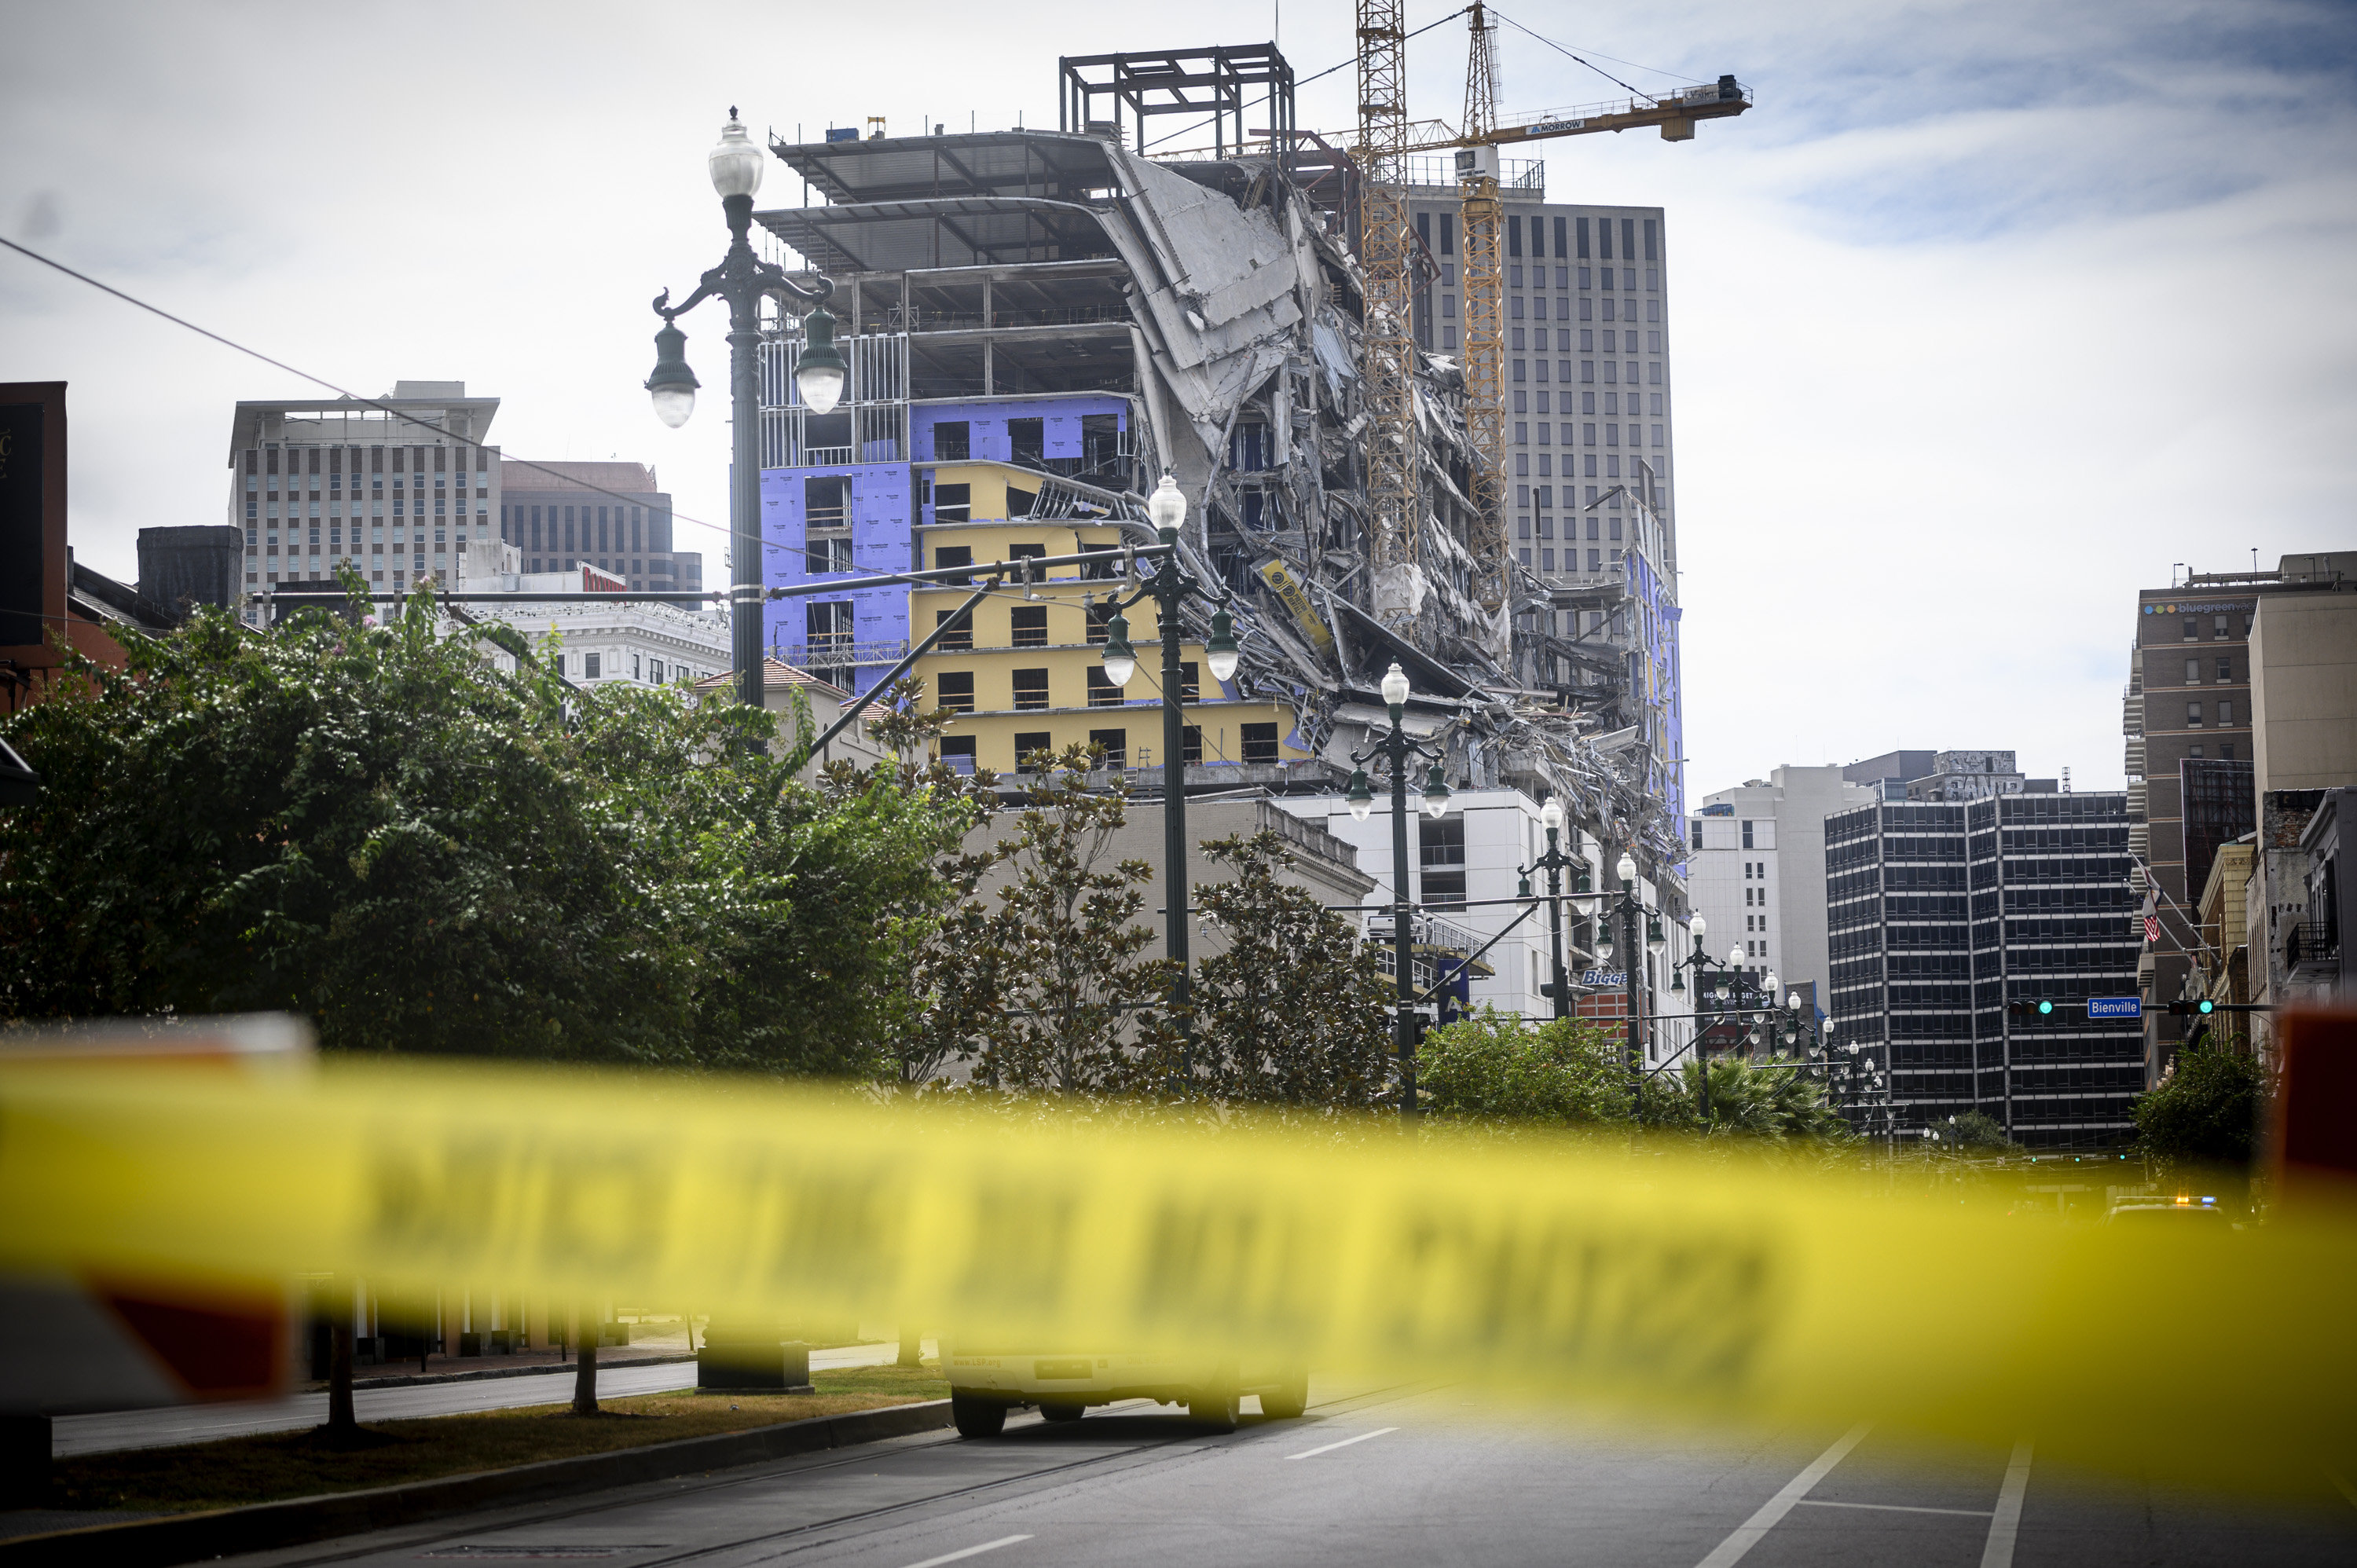 Transit changes and road closures remain four days after the Hard Rock collapse